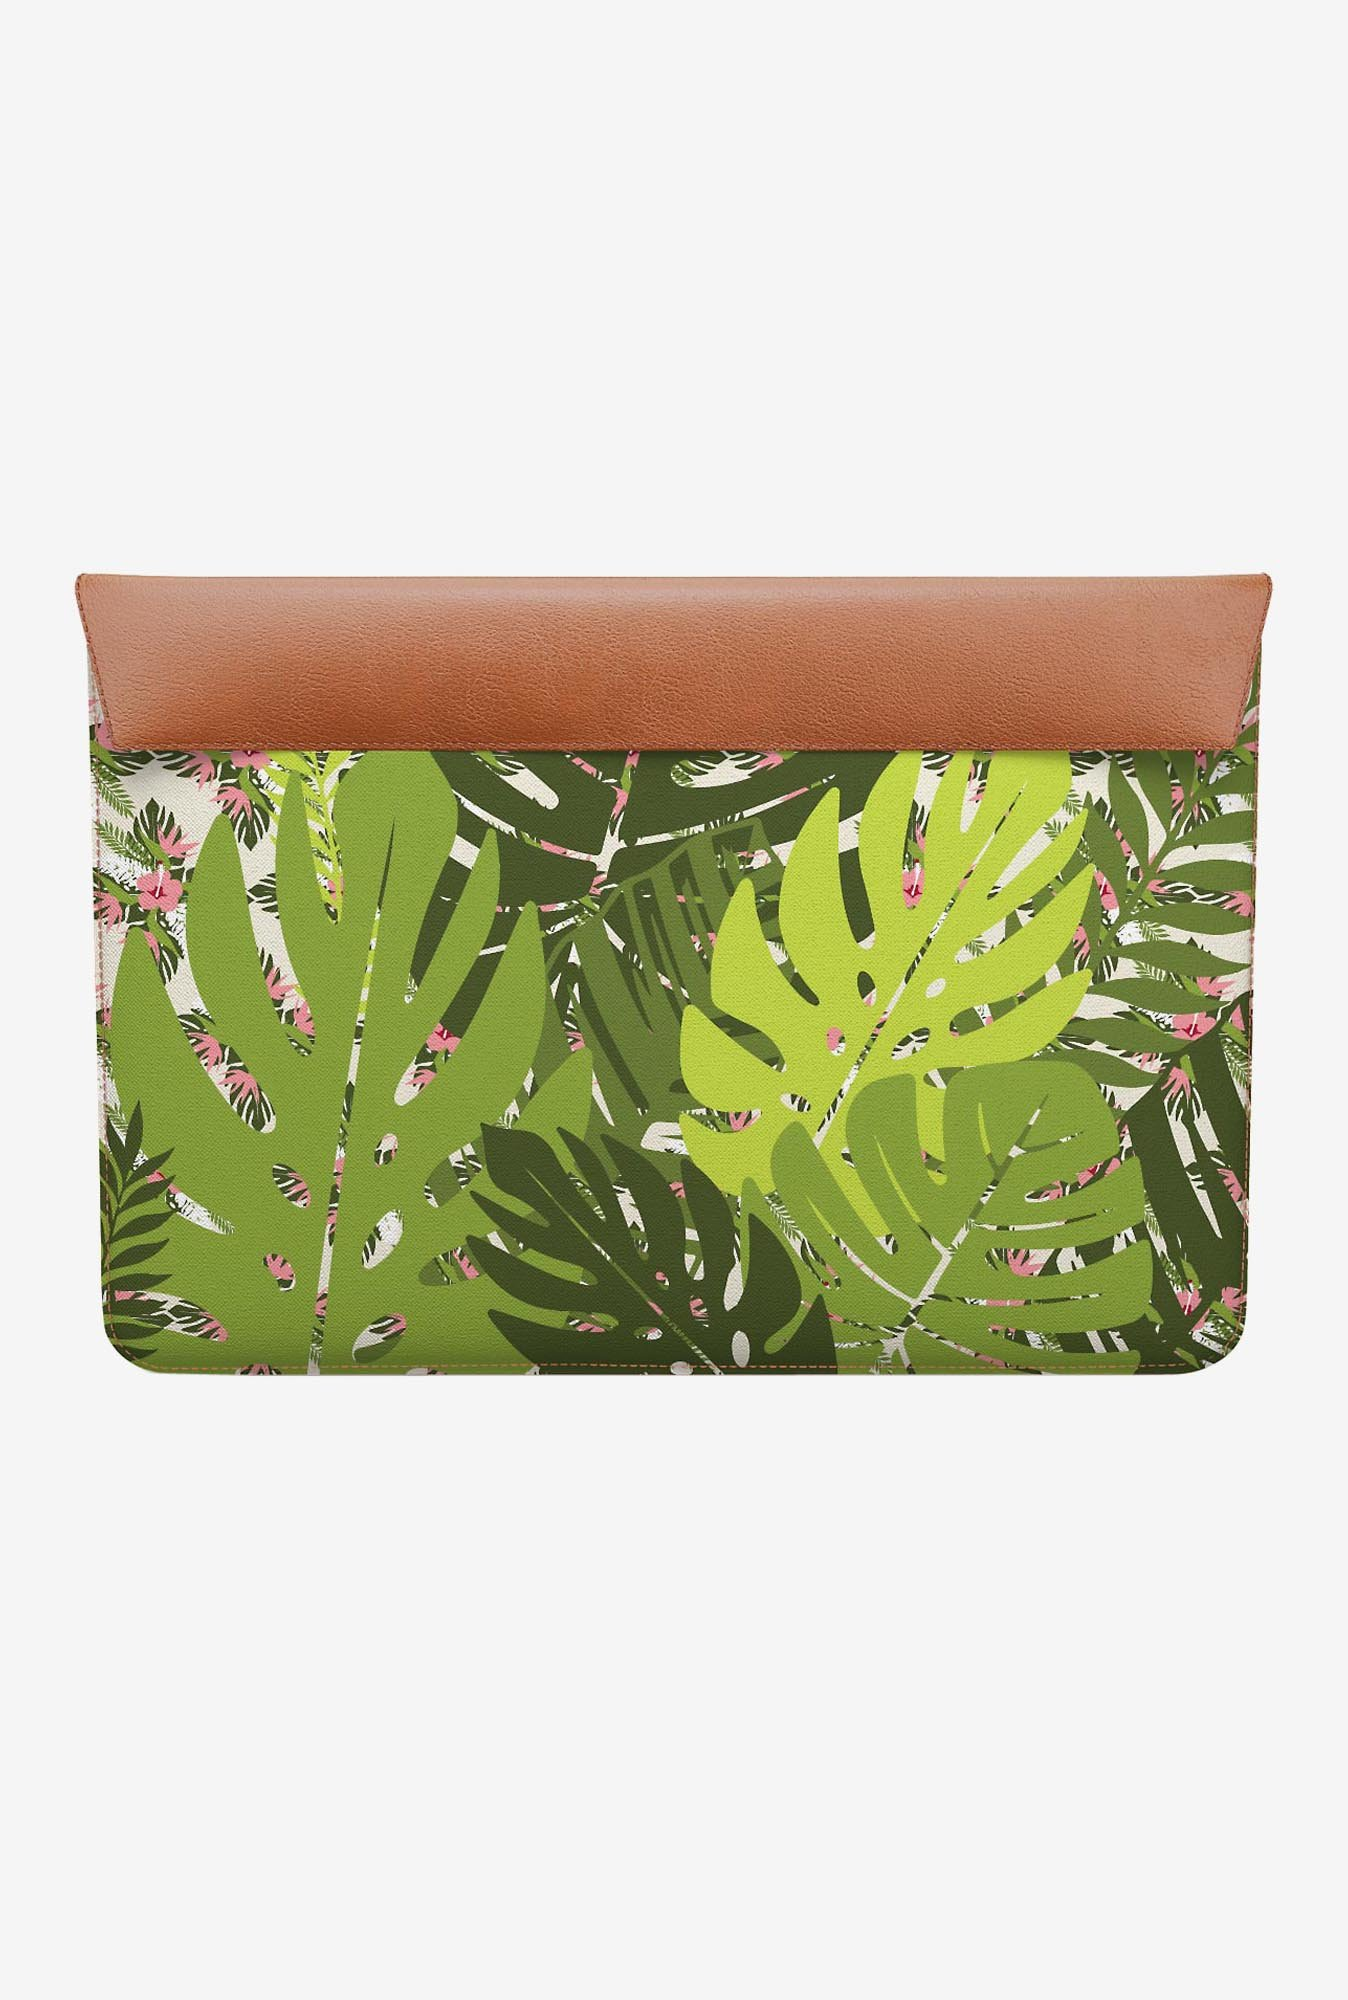 DailyObjects Tropical Ferns MacBook Pro 15 Envelope Sleeve